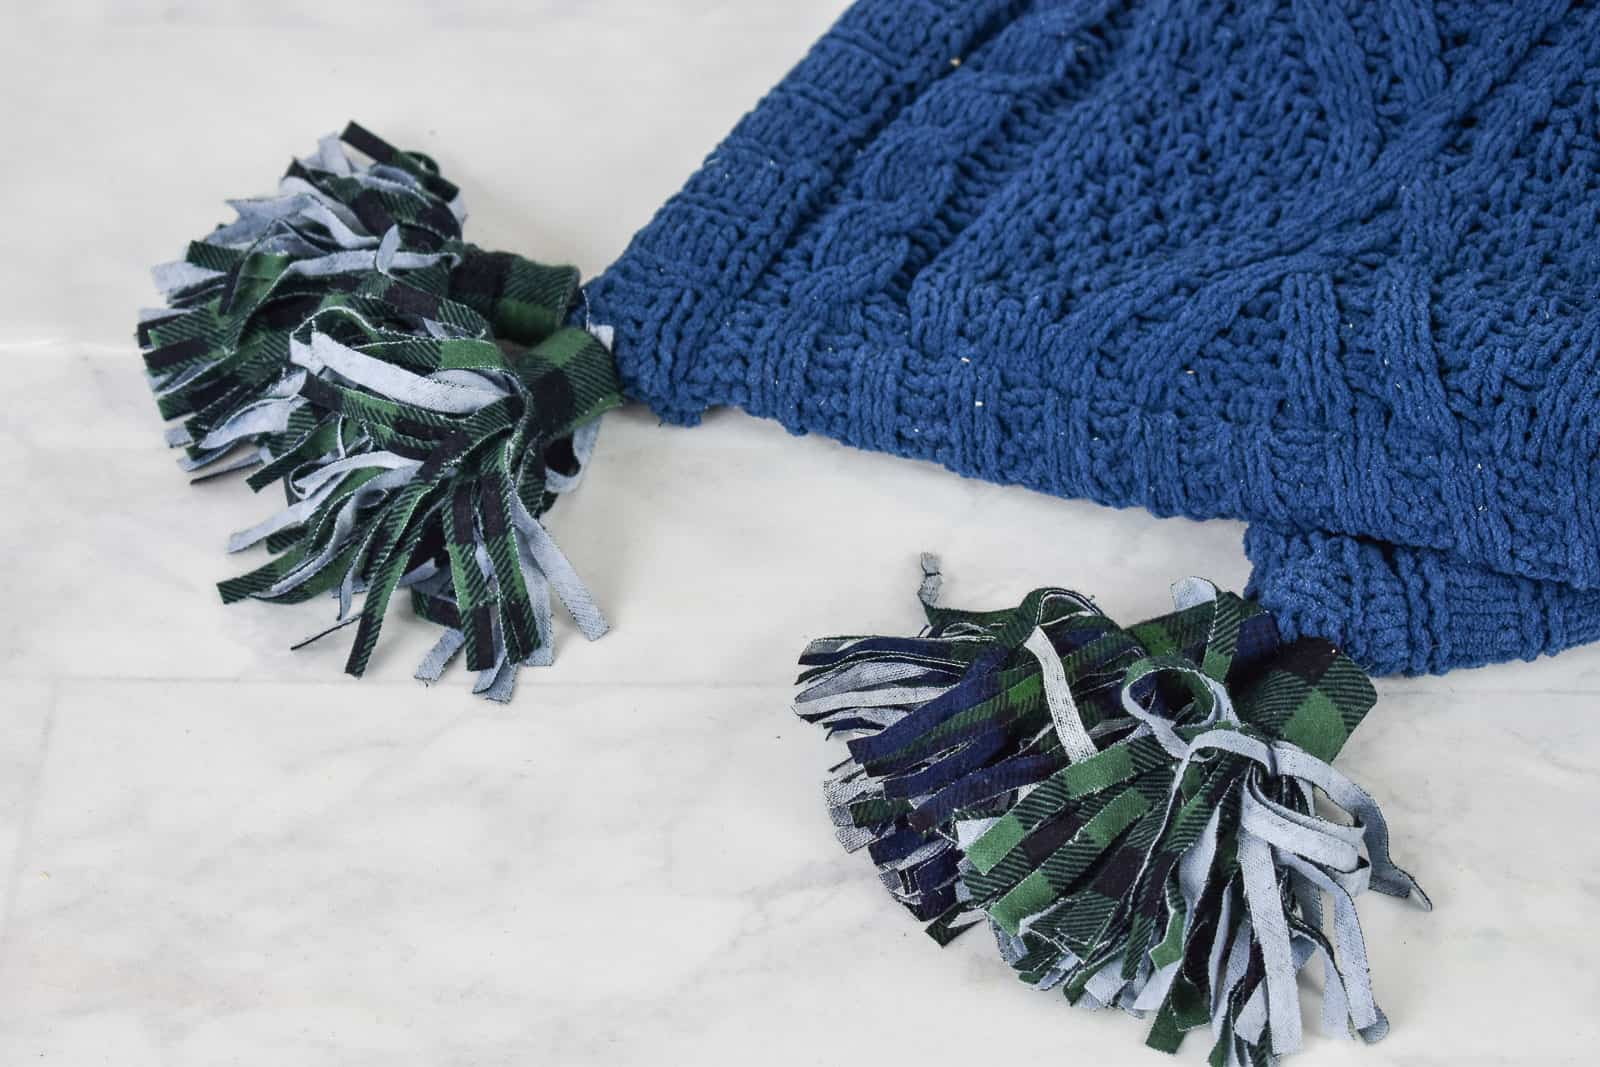 sew the tassels onto the blanket